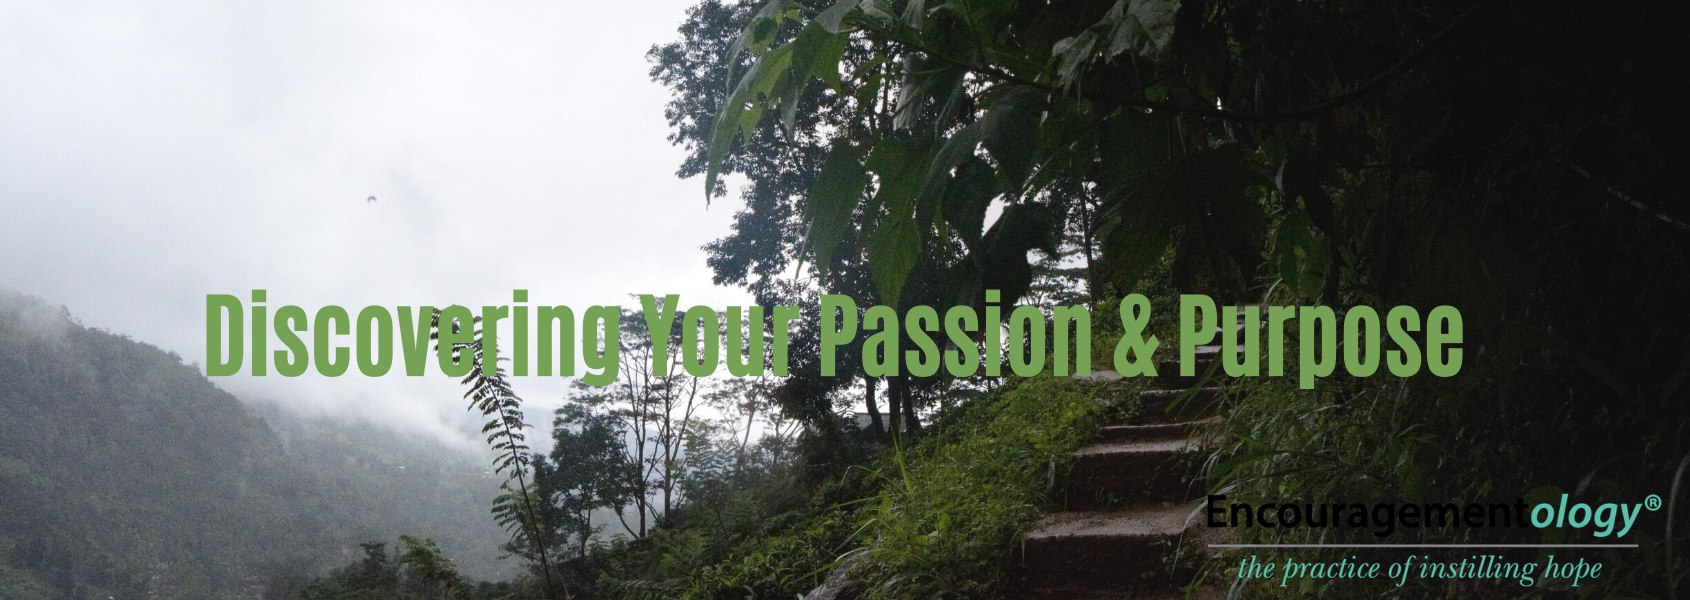 Discovering your passion and purpose